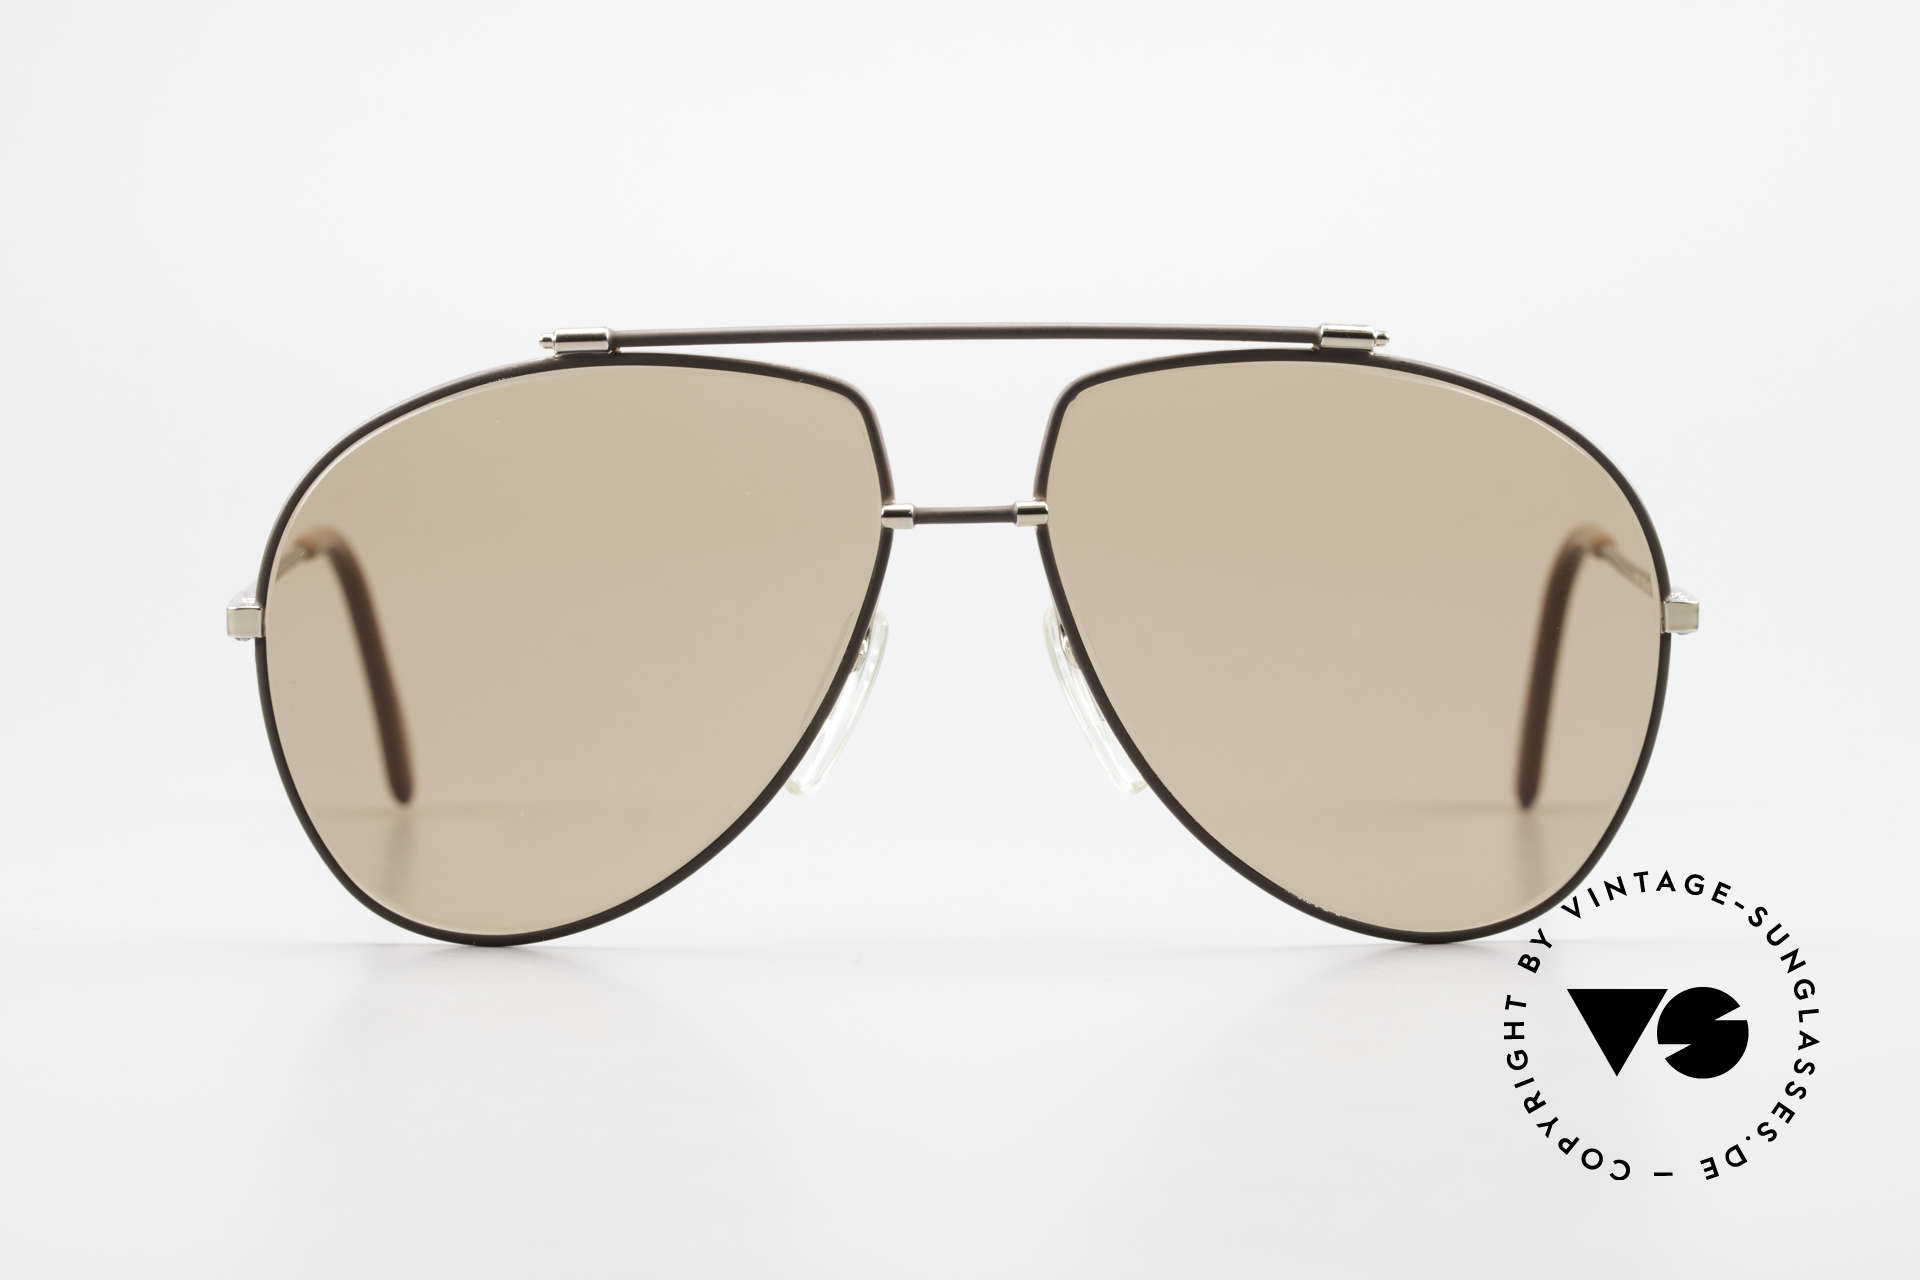 Zeiss 9371 Old 80's Quality Sunglasses, premium mineral lenses (UV protection & color fidelity), Made for Men